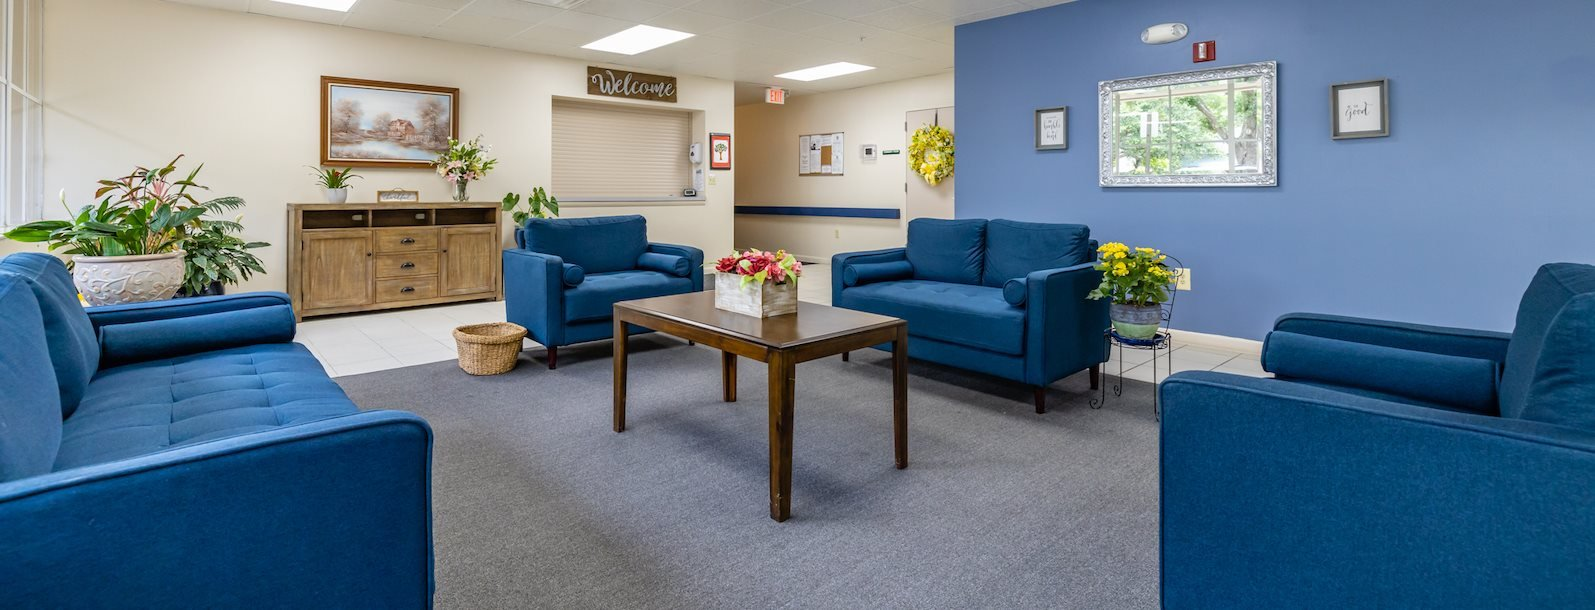 lobby seating area with comfortable couches and chairs